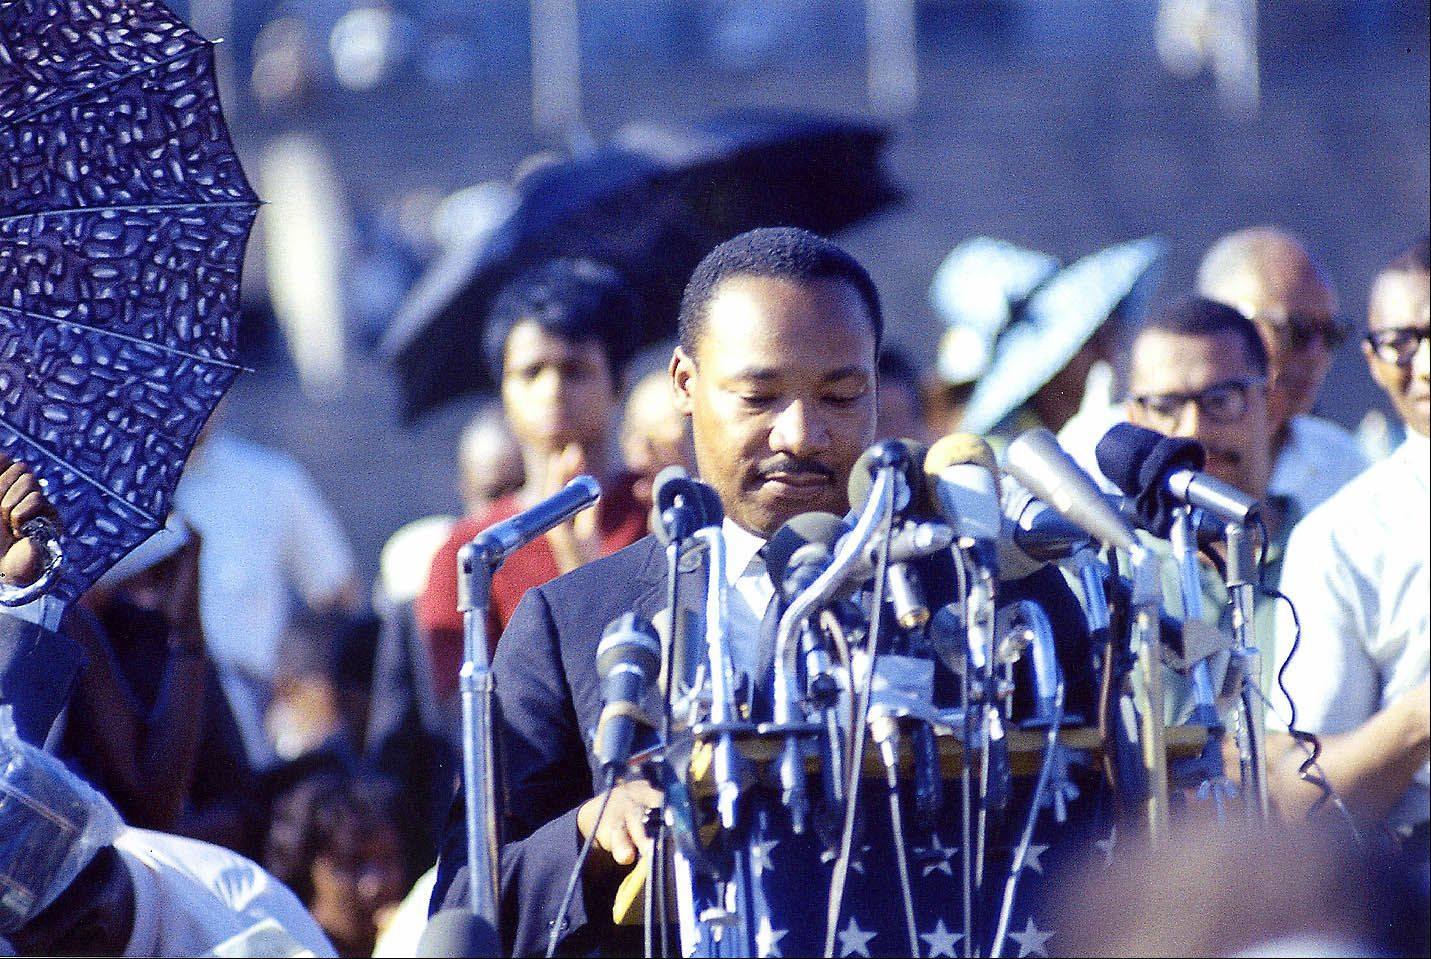 Martin Luther King, Jr., speaks at Soldier Field in Chicago in this undated photo.